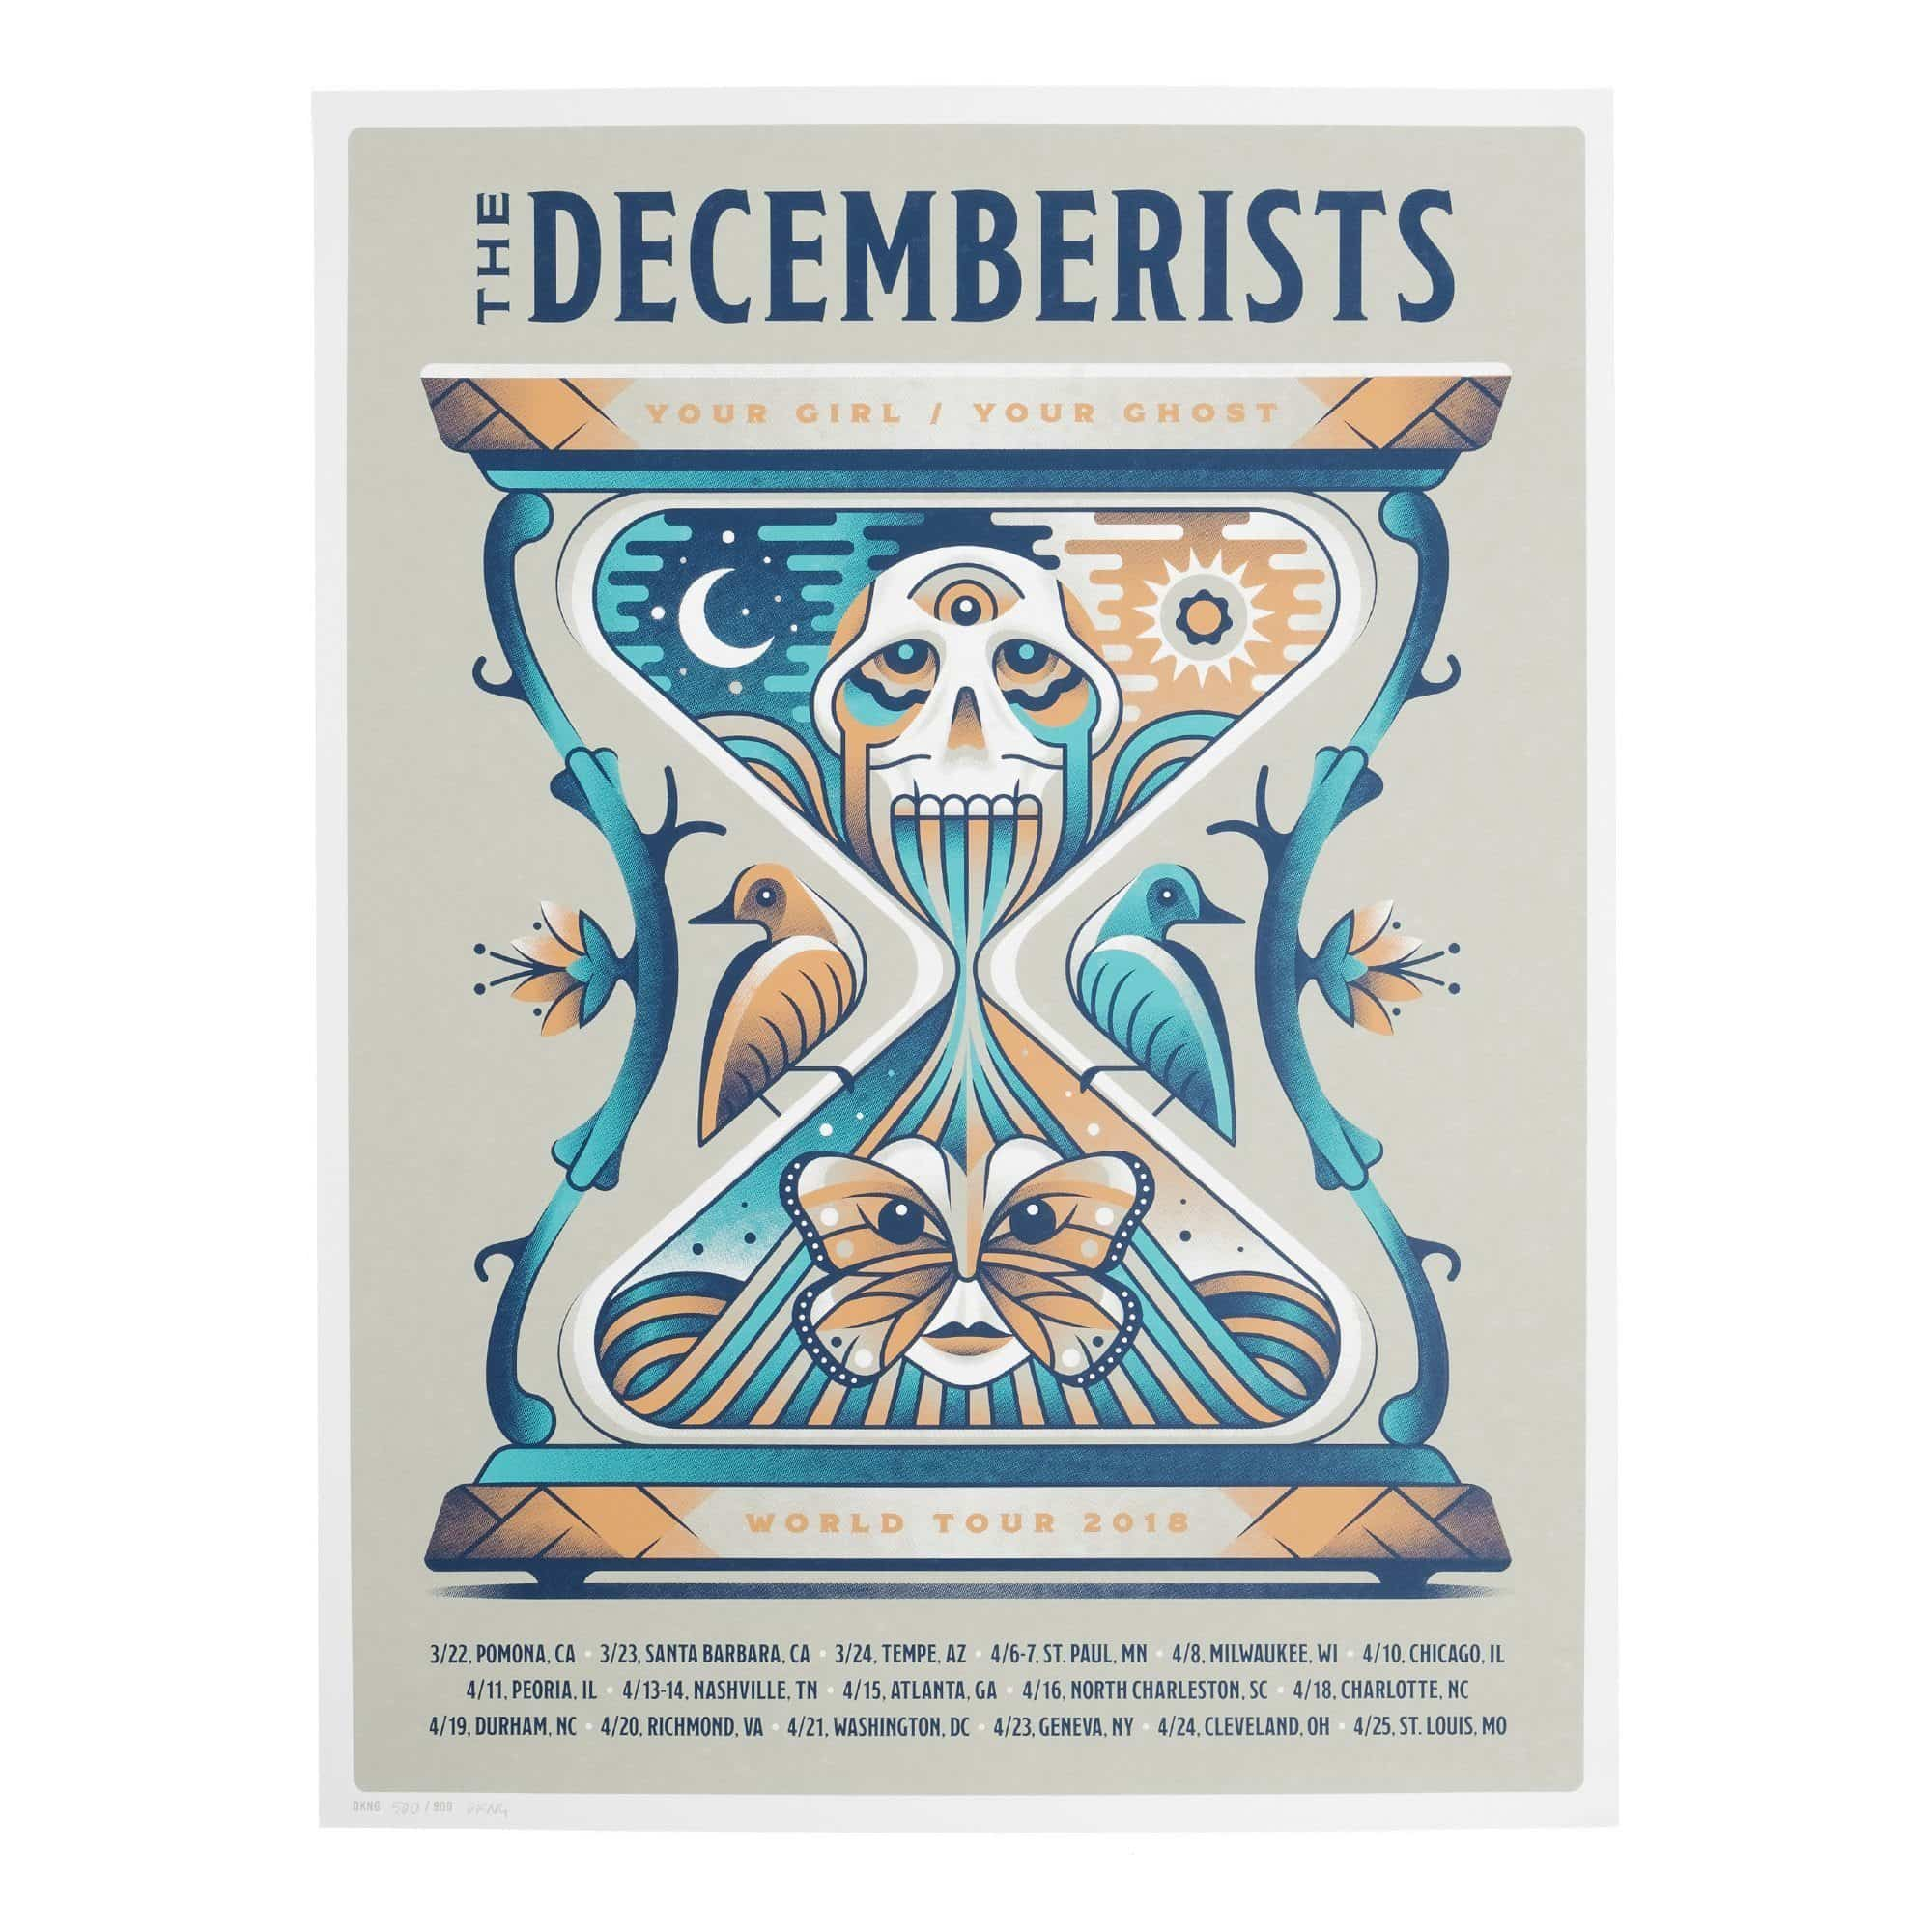 The Decemberists 'Your Girl/Your Ghost' 2018 Tour Poster - 18